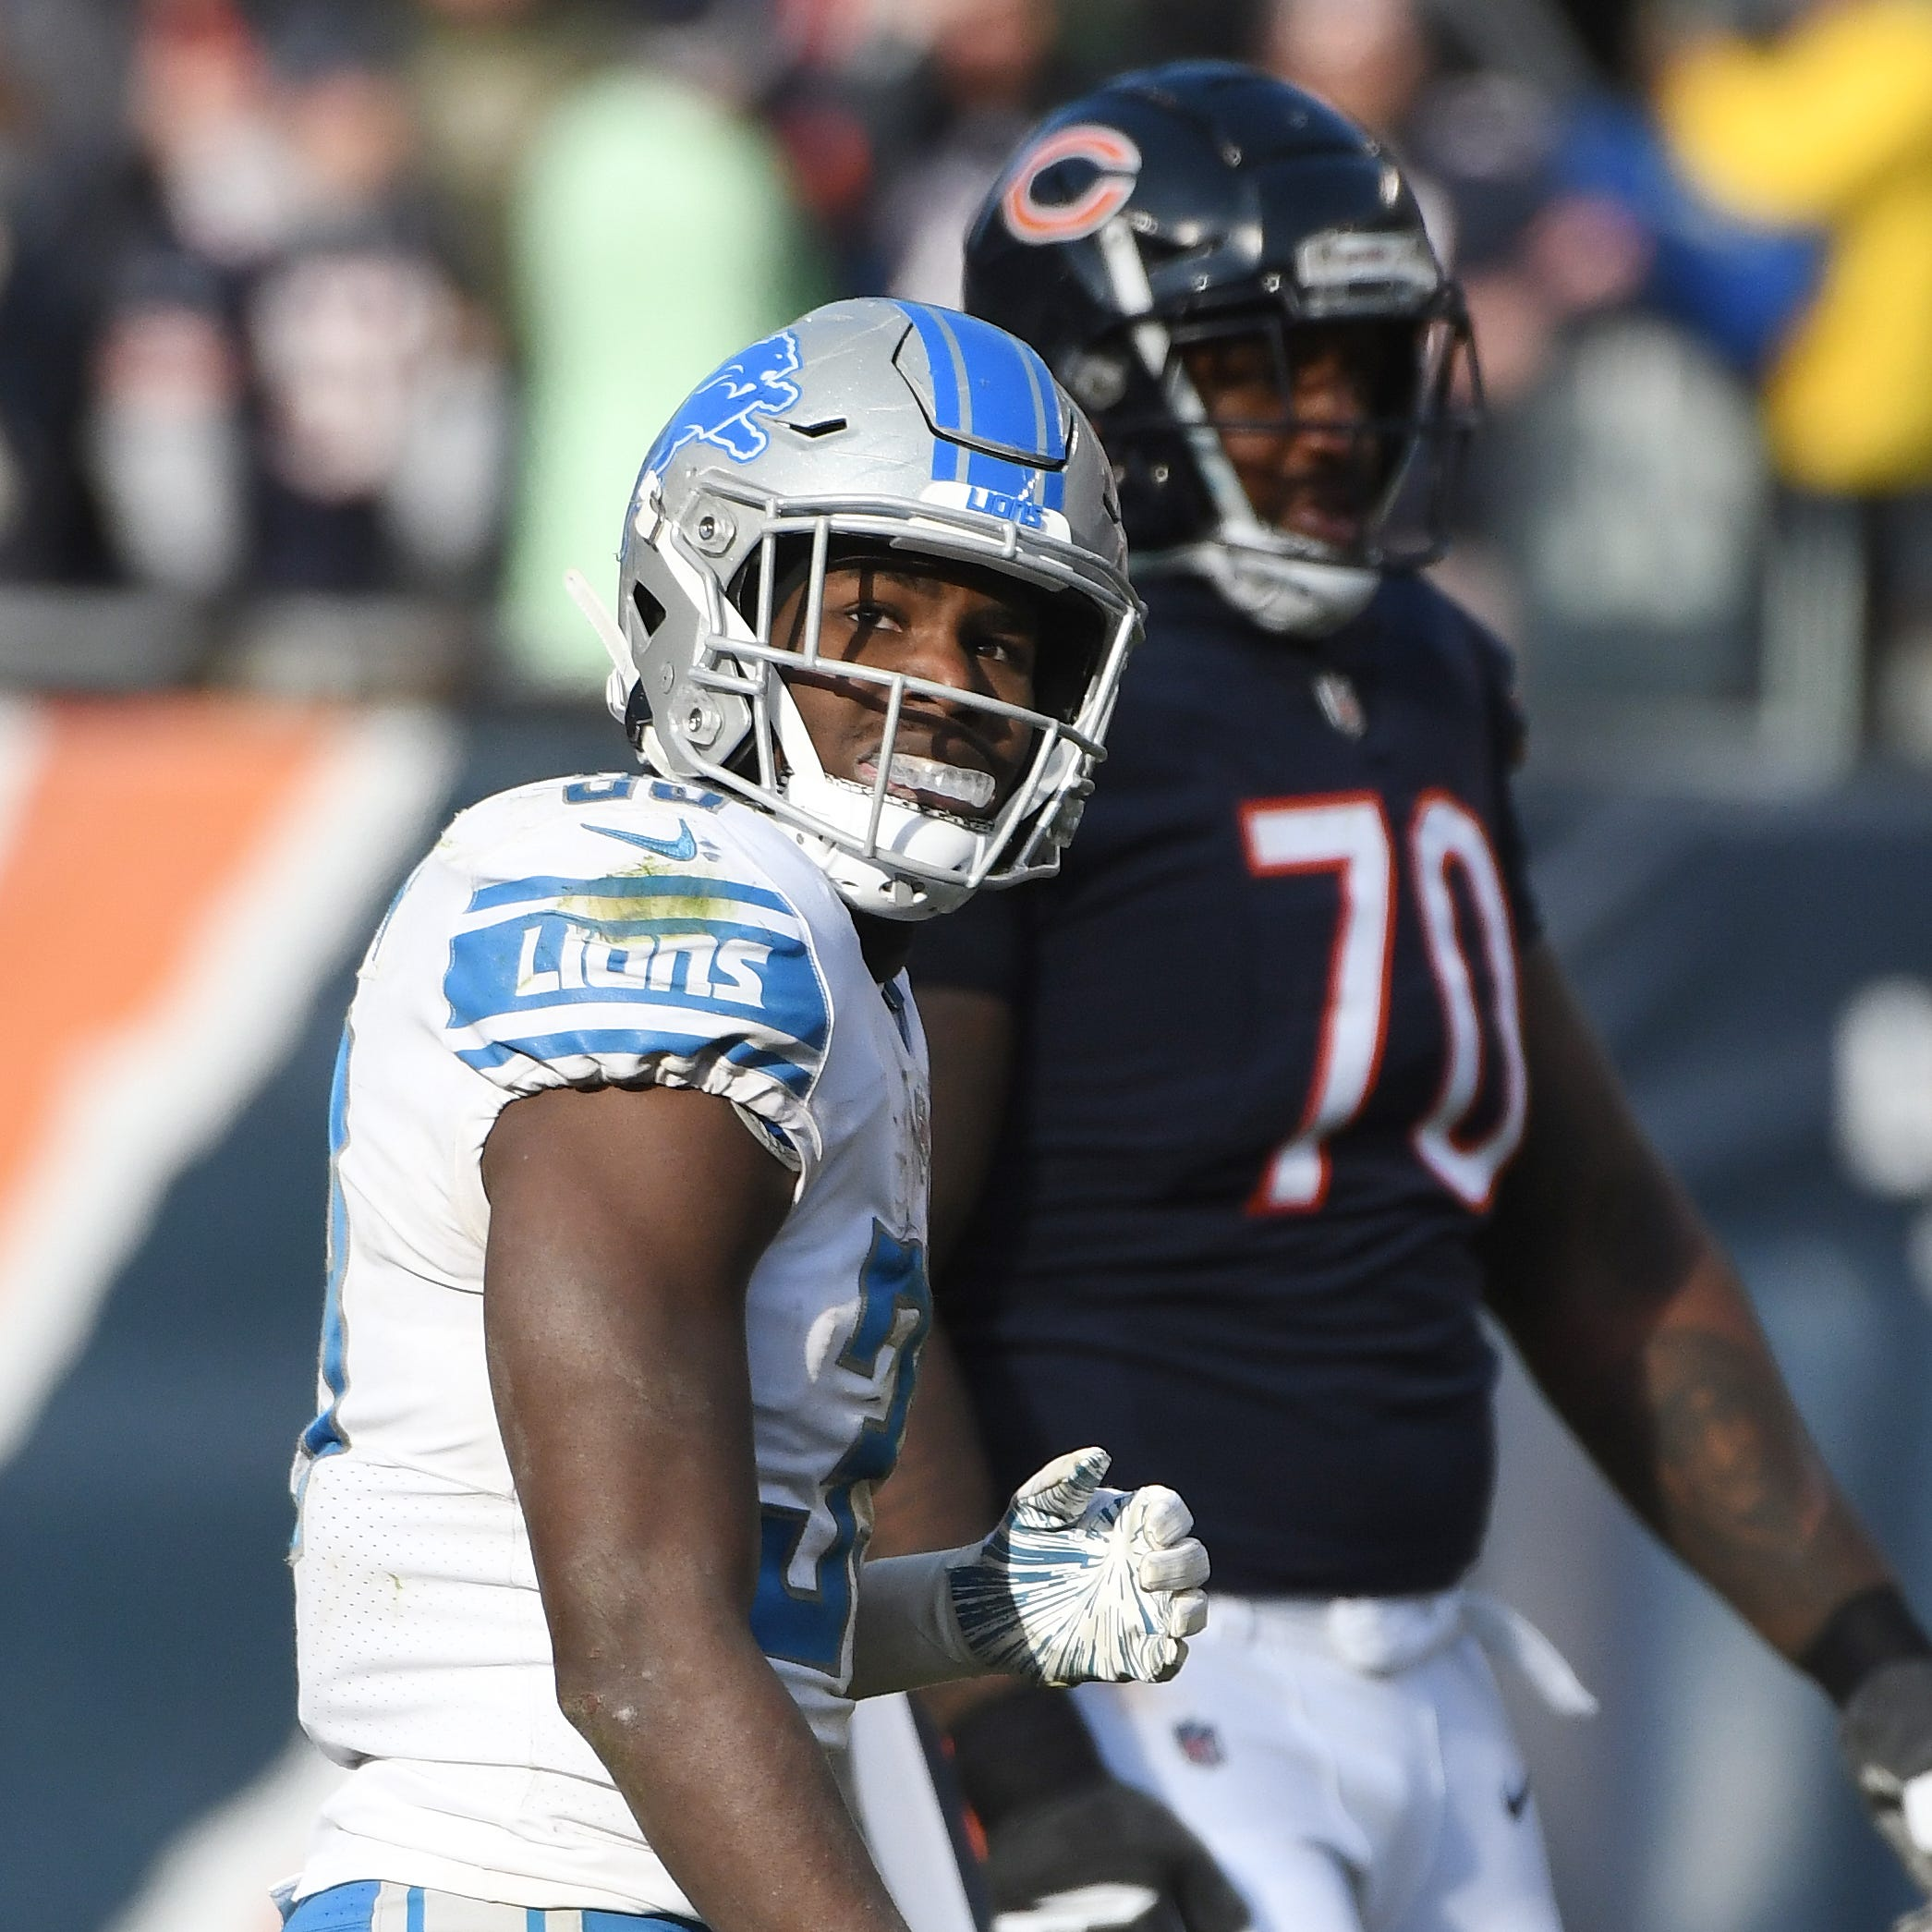 Lions place Kerryon Johnson on IR, activate Agnew